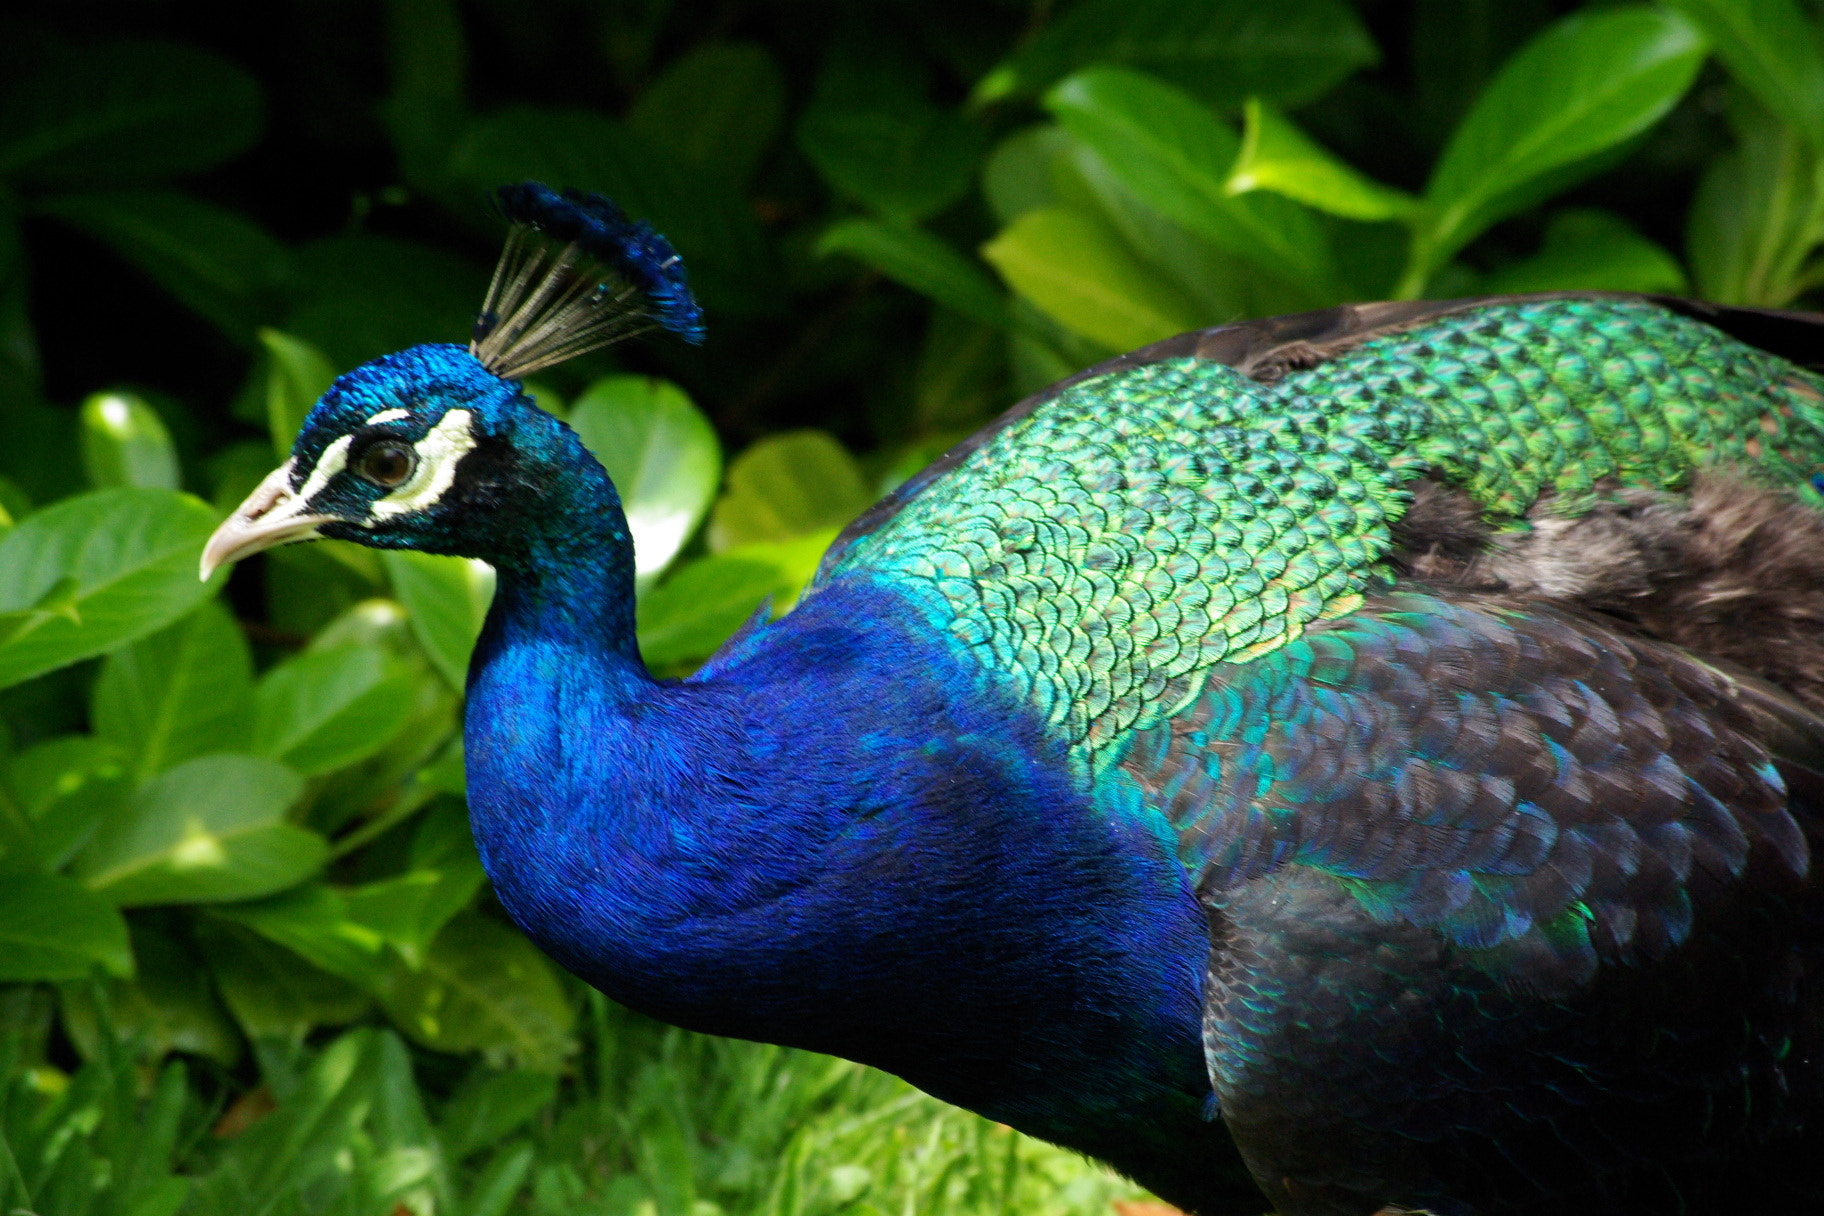 Photograph Peacock by Jo Bird on 500px